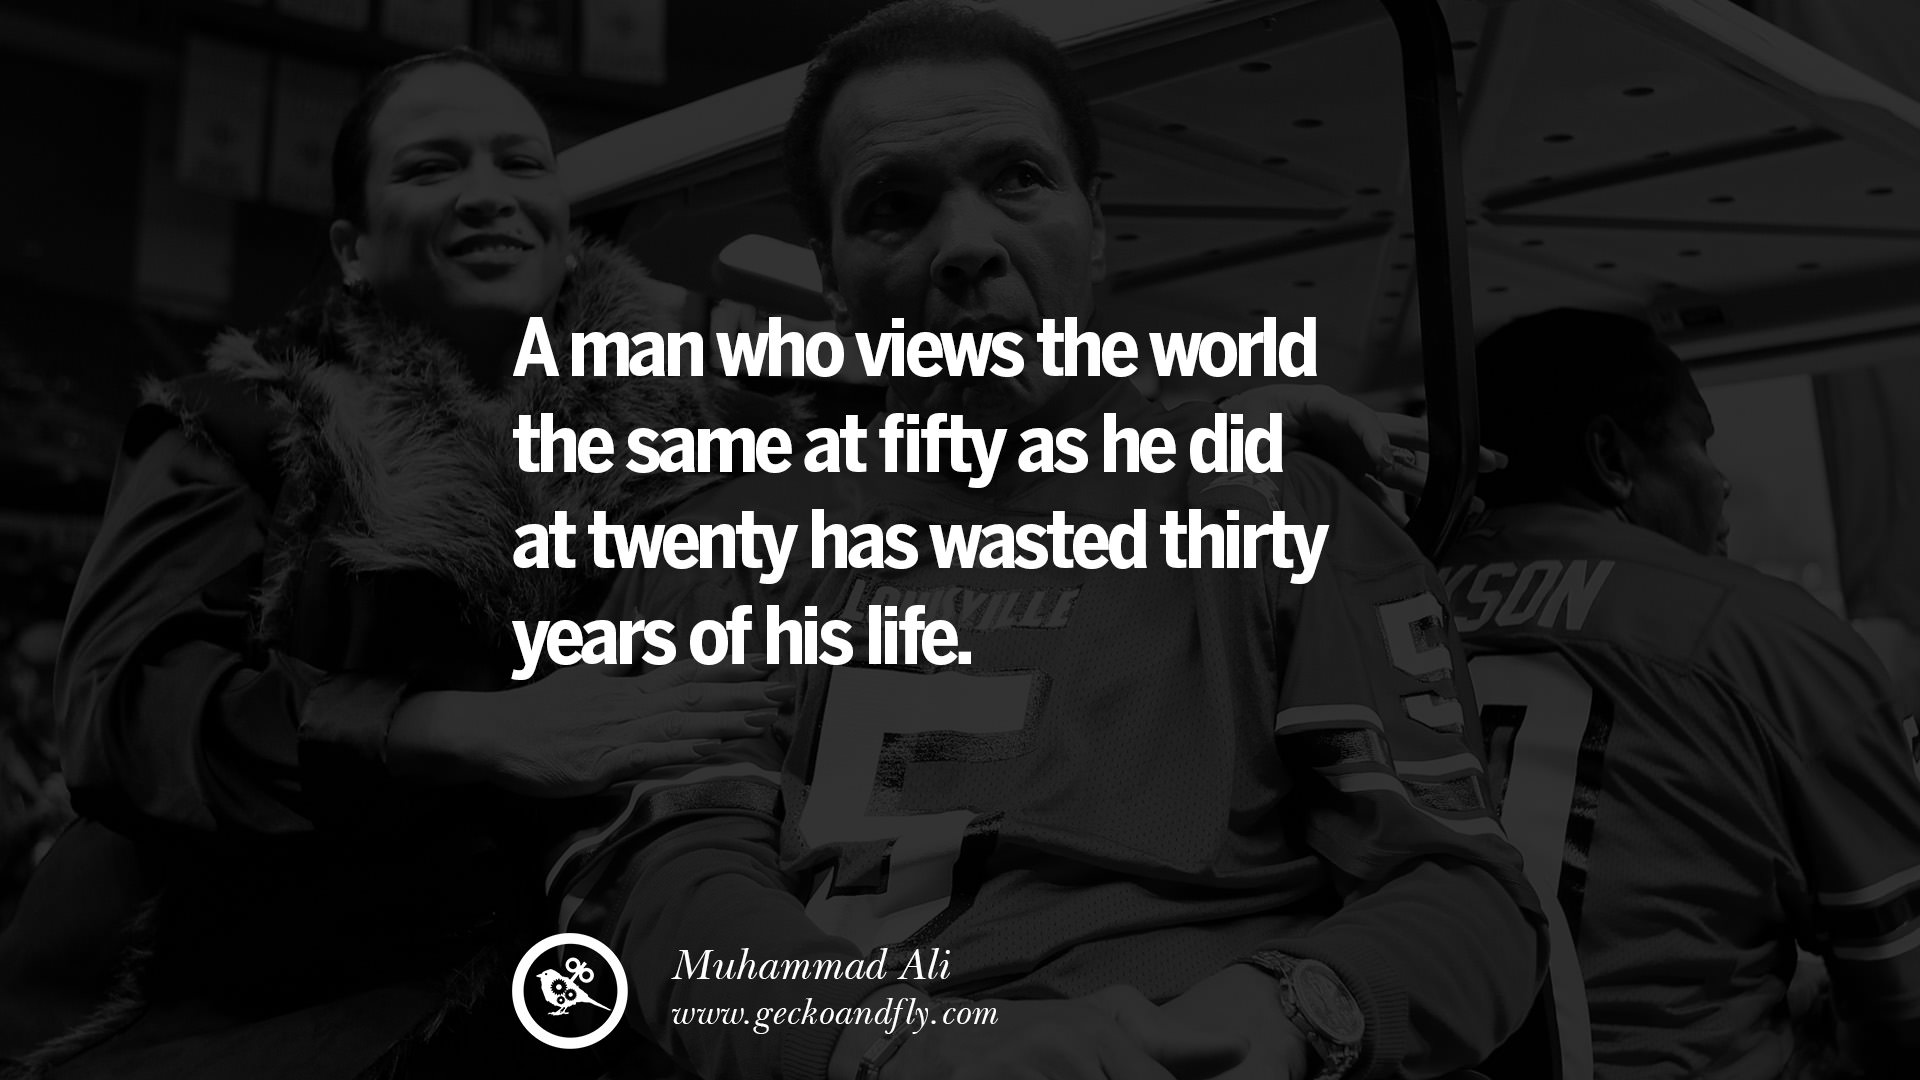 Muhammad Ali Quotes - A man who views the world the same at fifty as he did at twenty, has wasted thirty years of his life. | Muhammad Ali